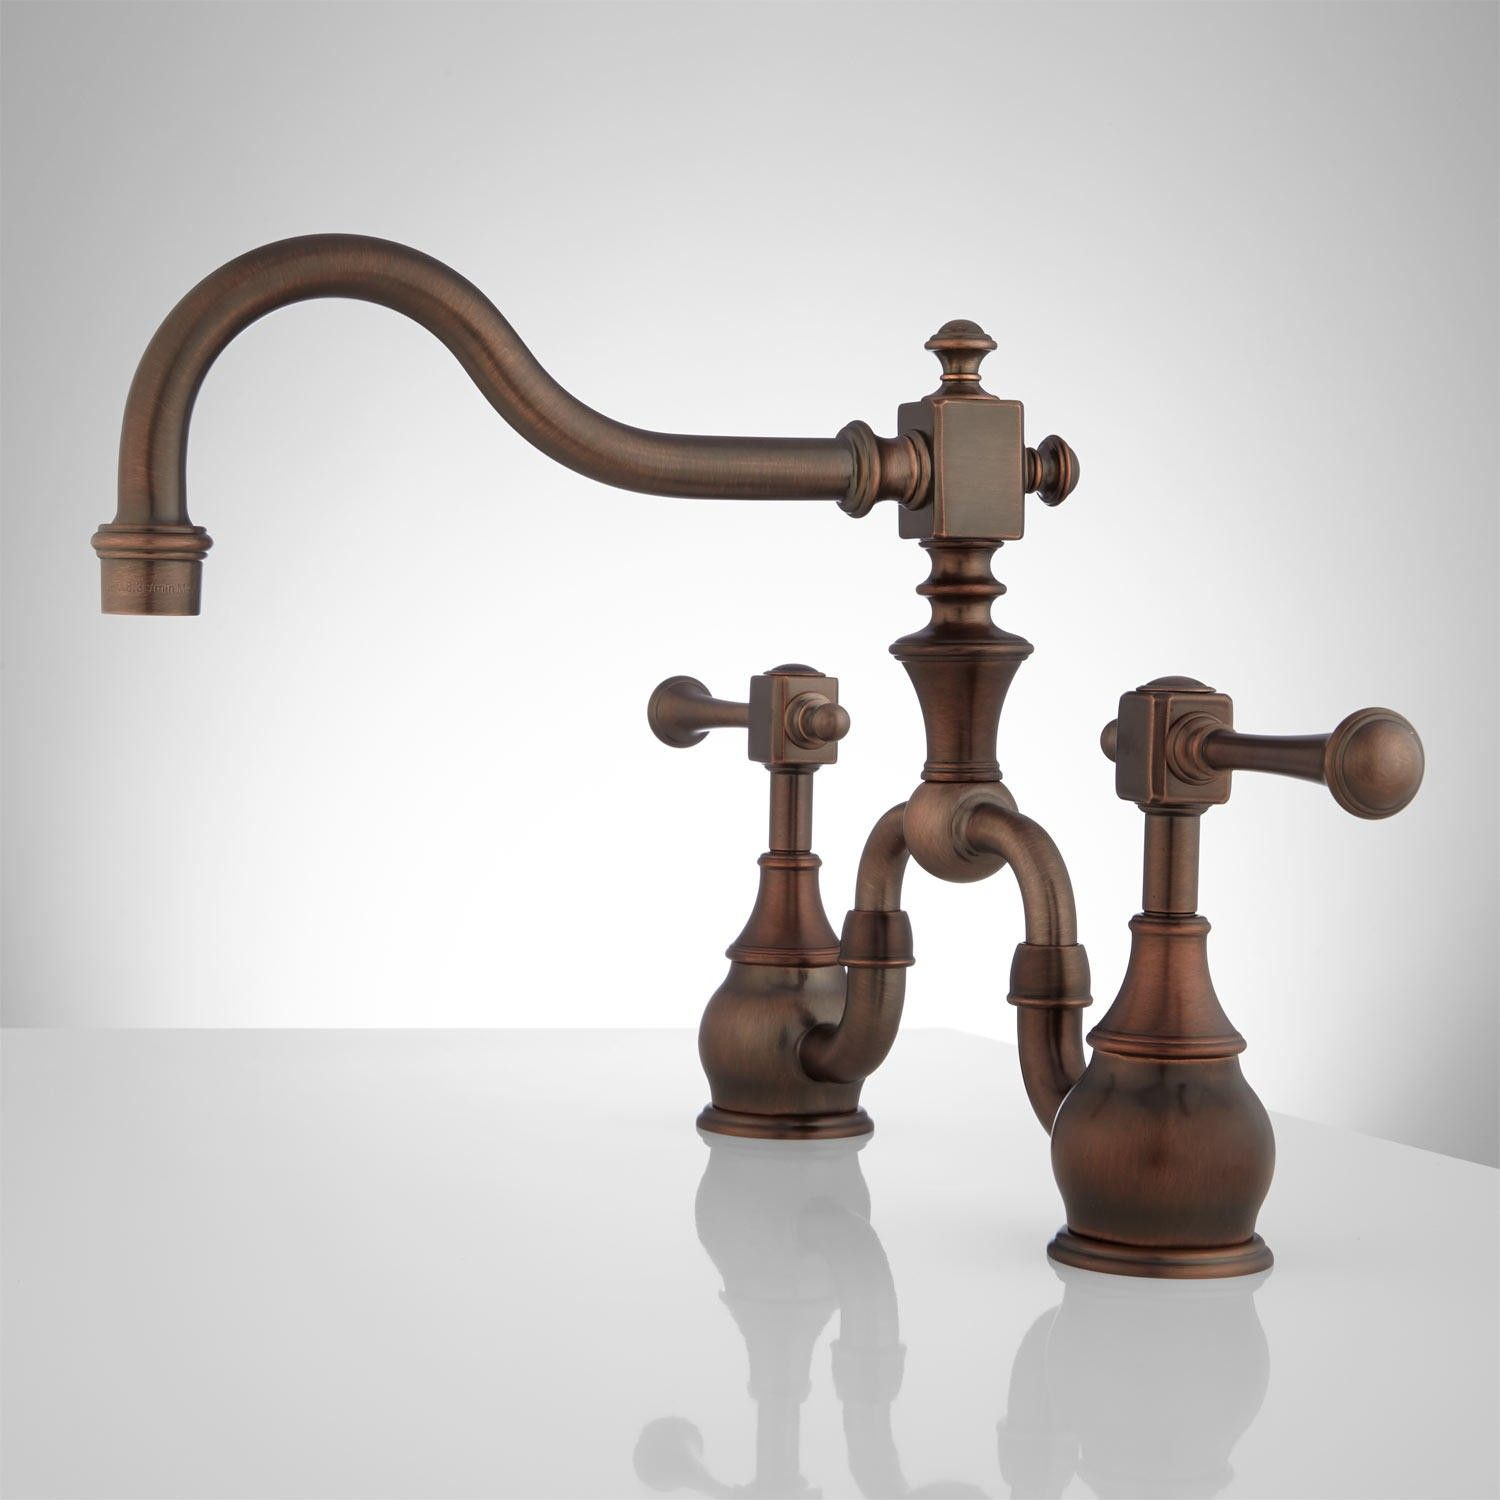 Pin by goodfurniture on kitchen faucets pinterest kitchen